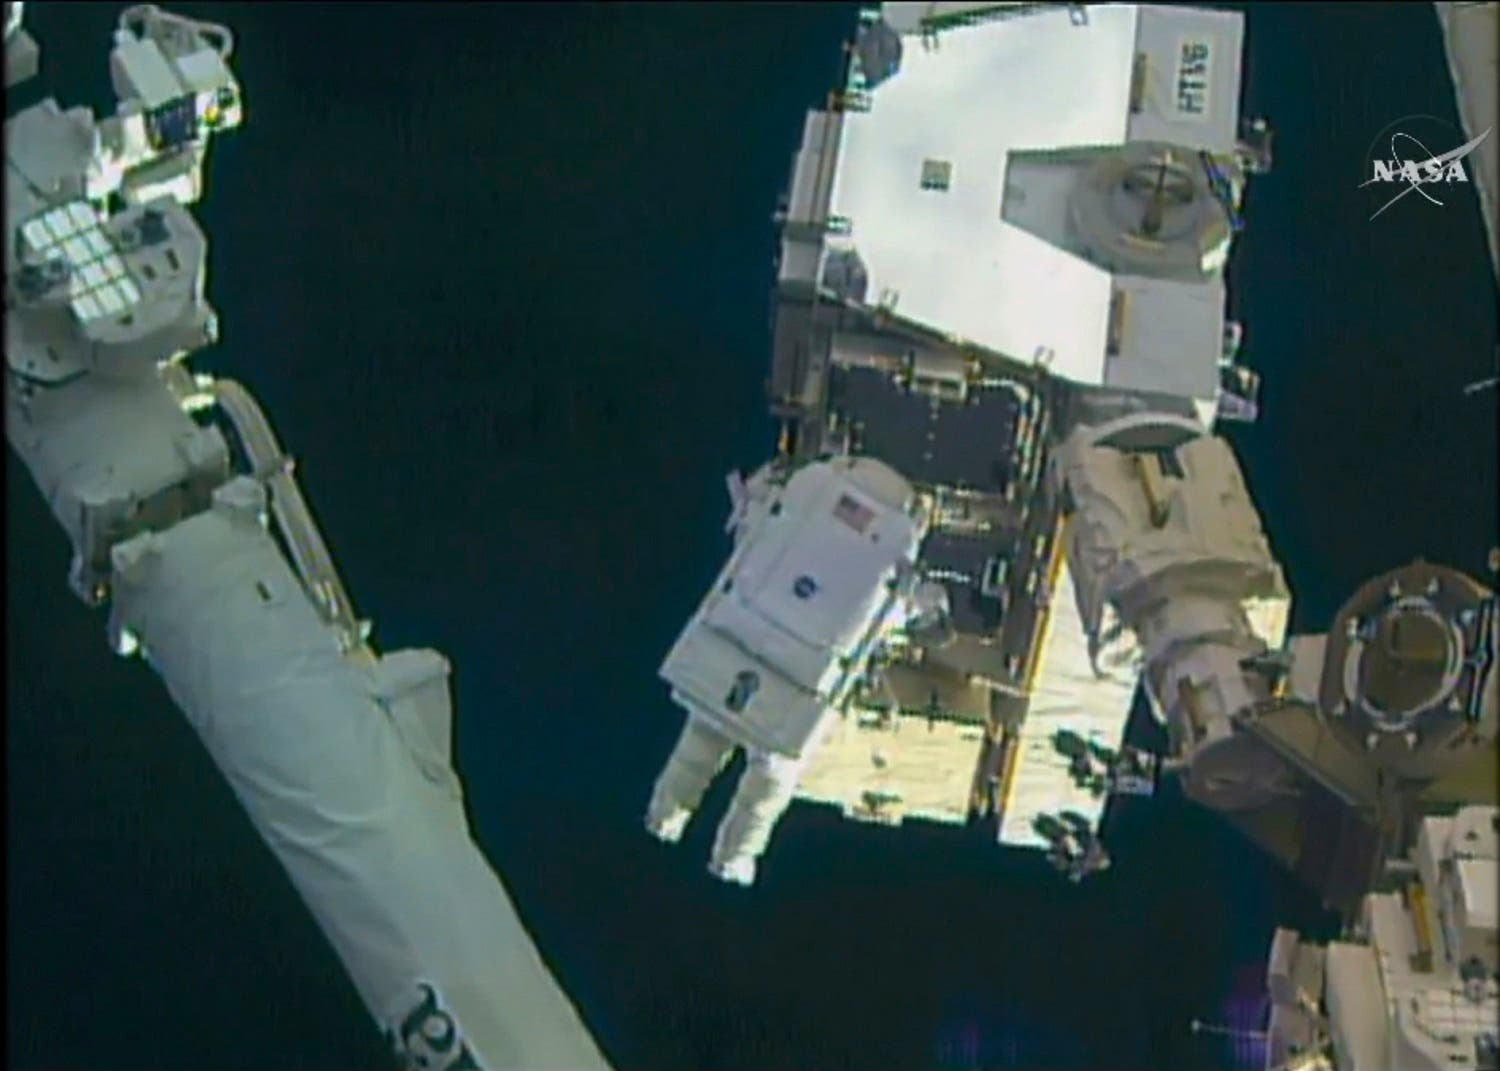 Whitson and her spacewalking partner, Shane Kimbrough, need to complete prep work on a docking port. (AP)